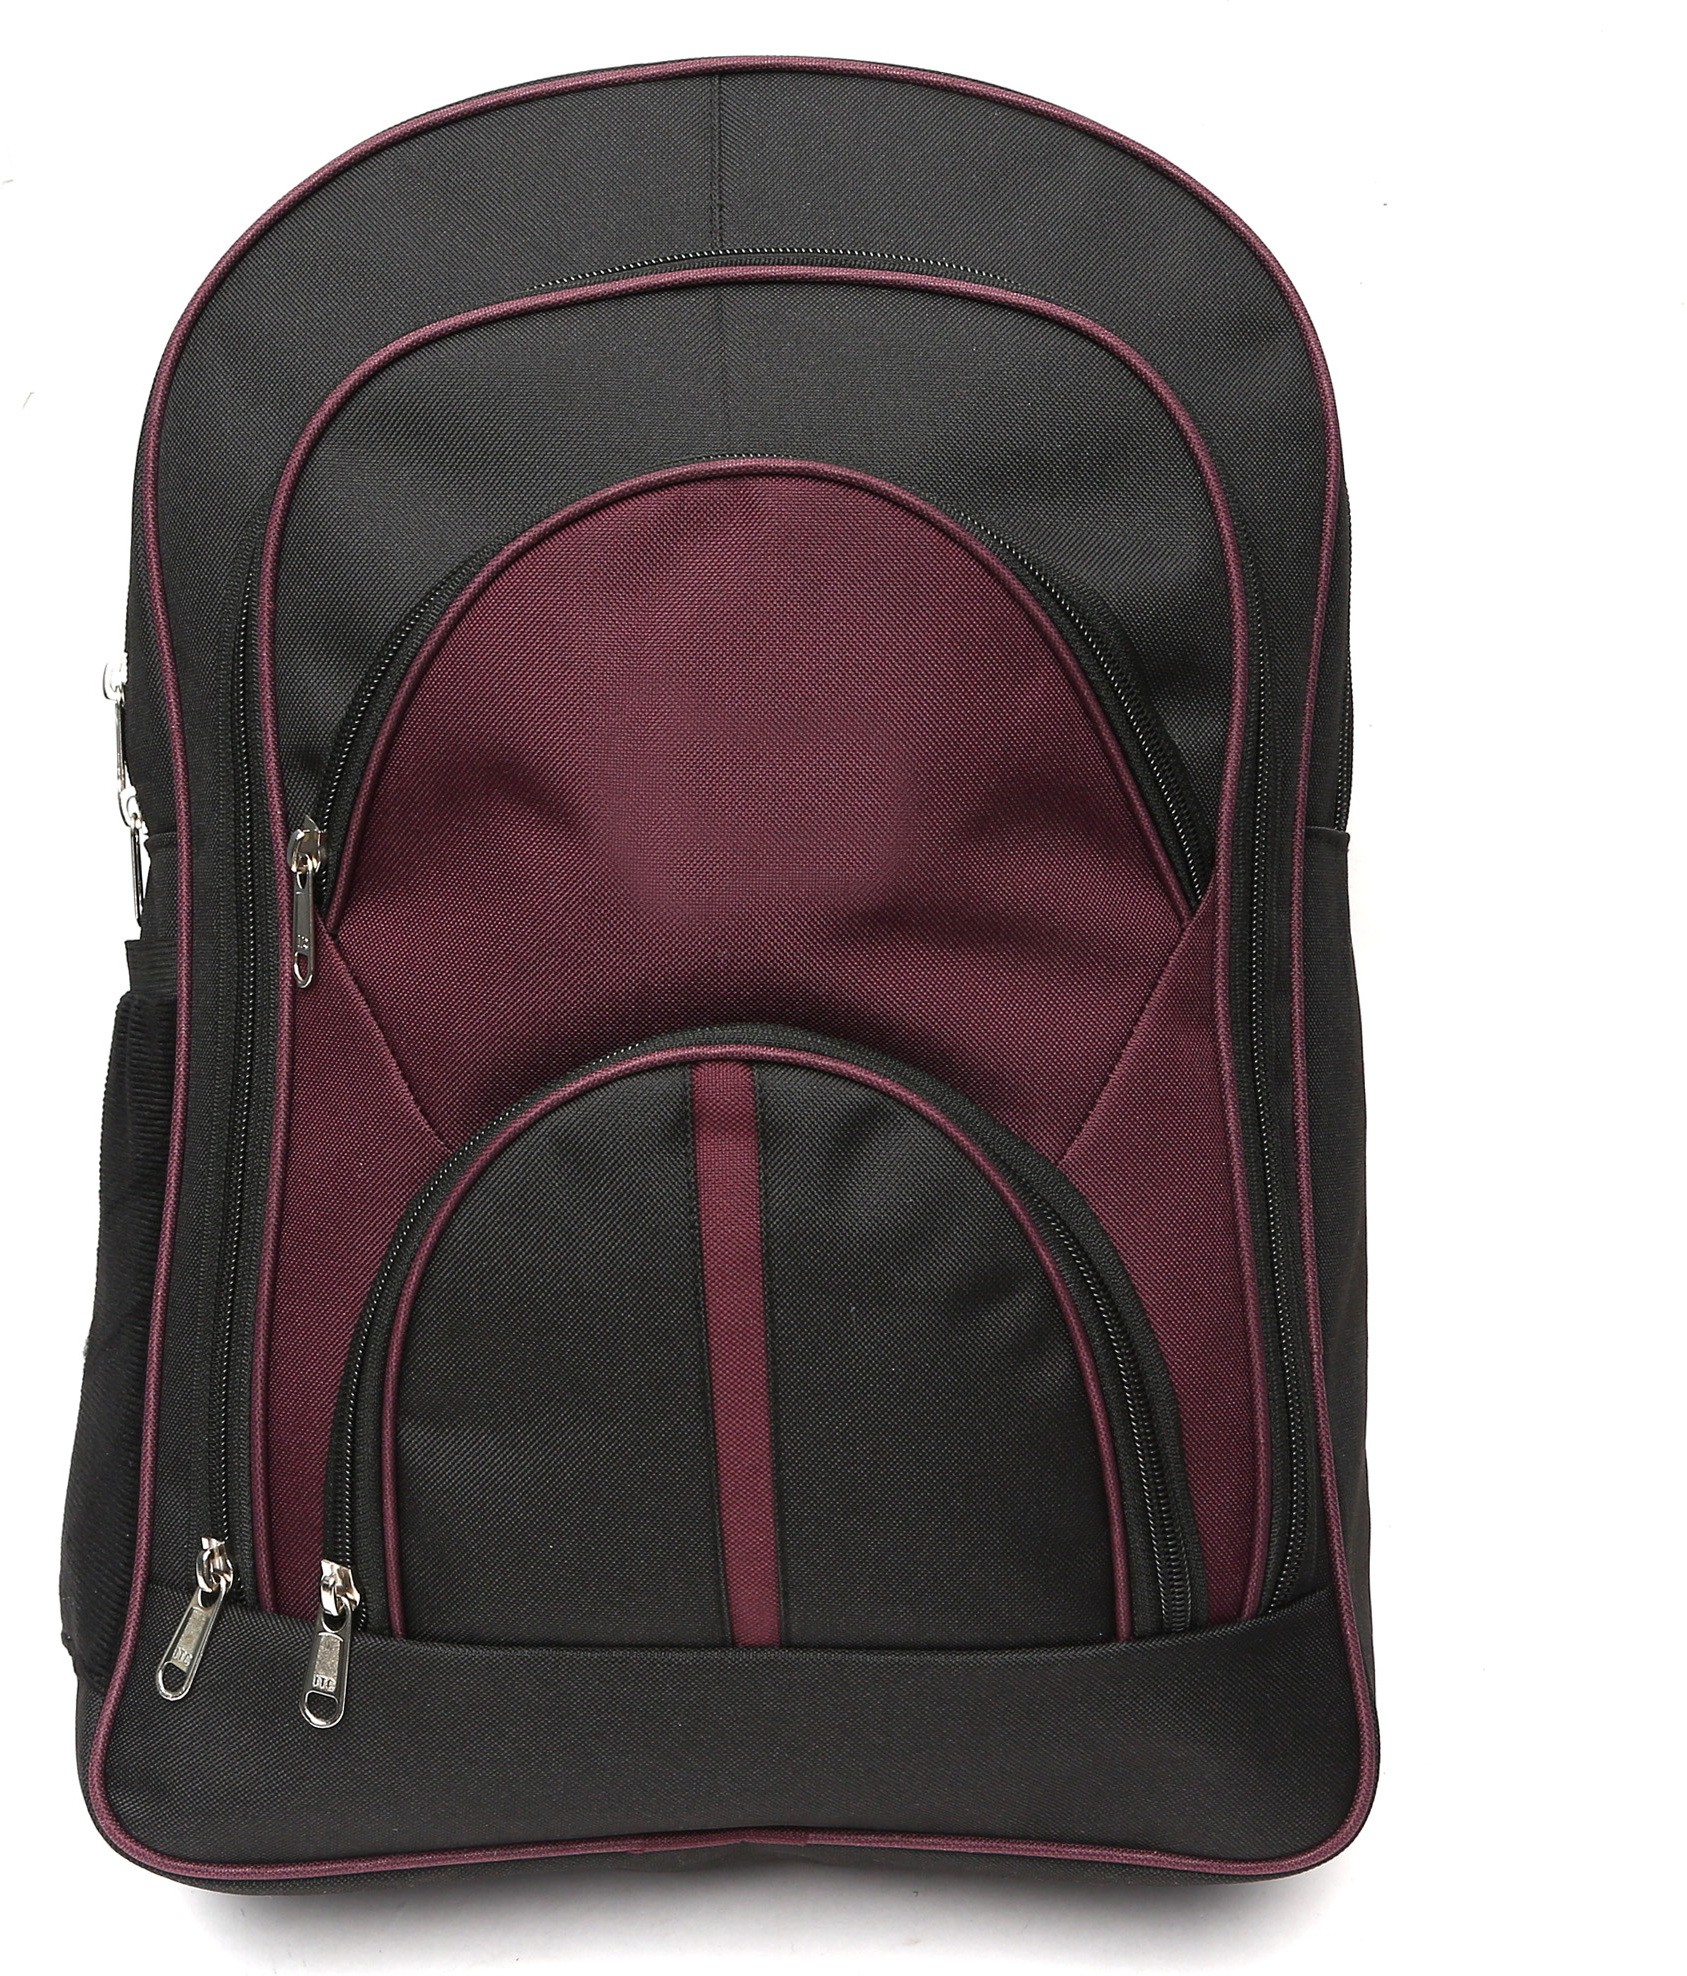 Vaishnovi 15.6 inch Laptop Backpack(Black, Purple)